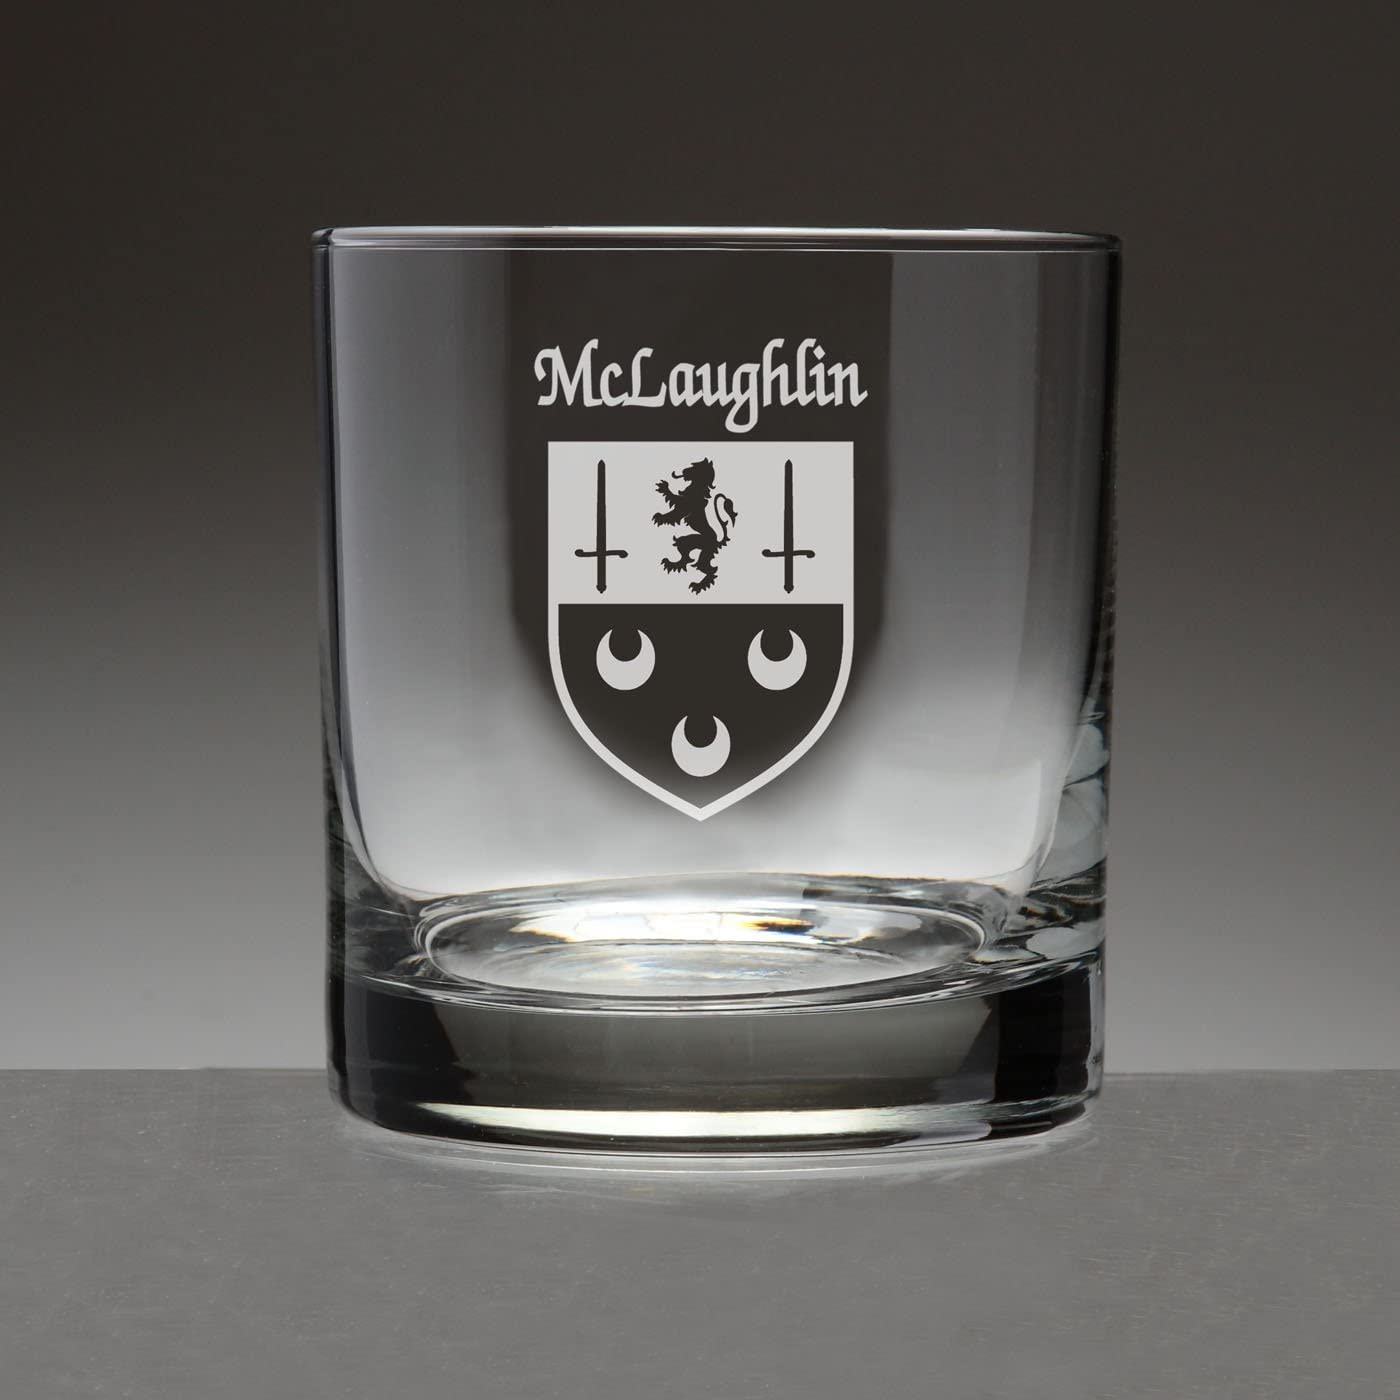 McLaughlin Irish Coat of Arms Tumbler Glasses - Set of 4 (Sand Etched)